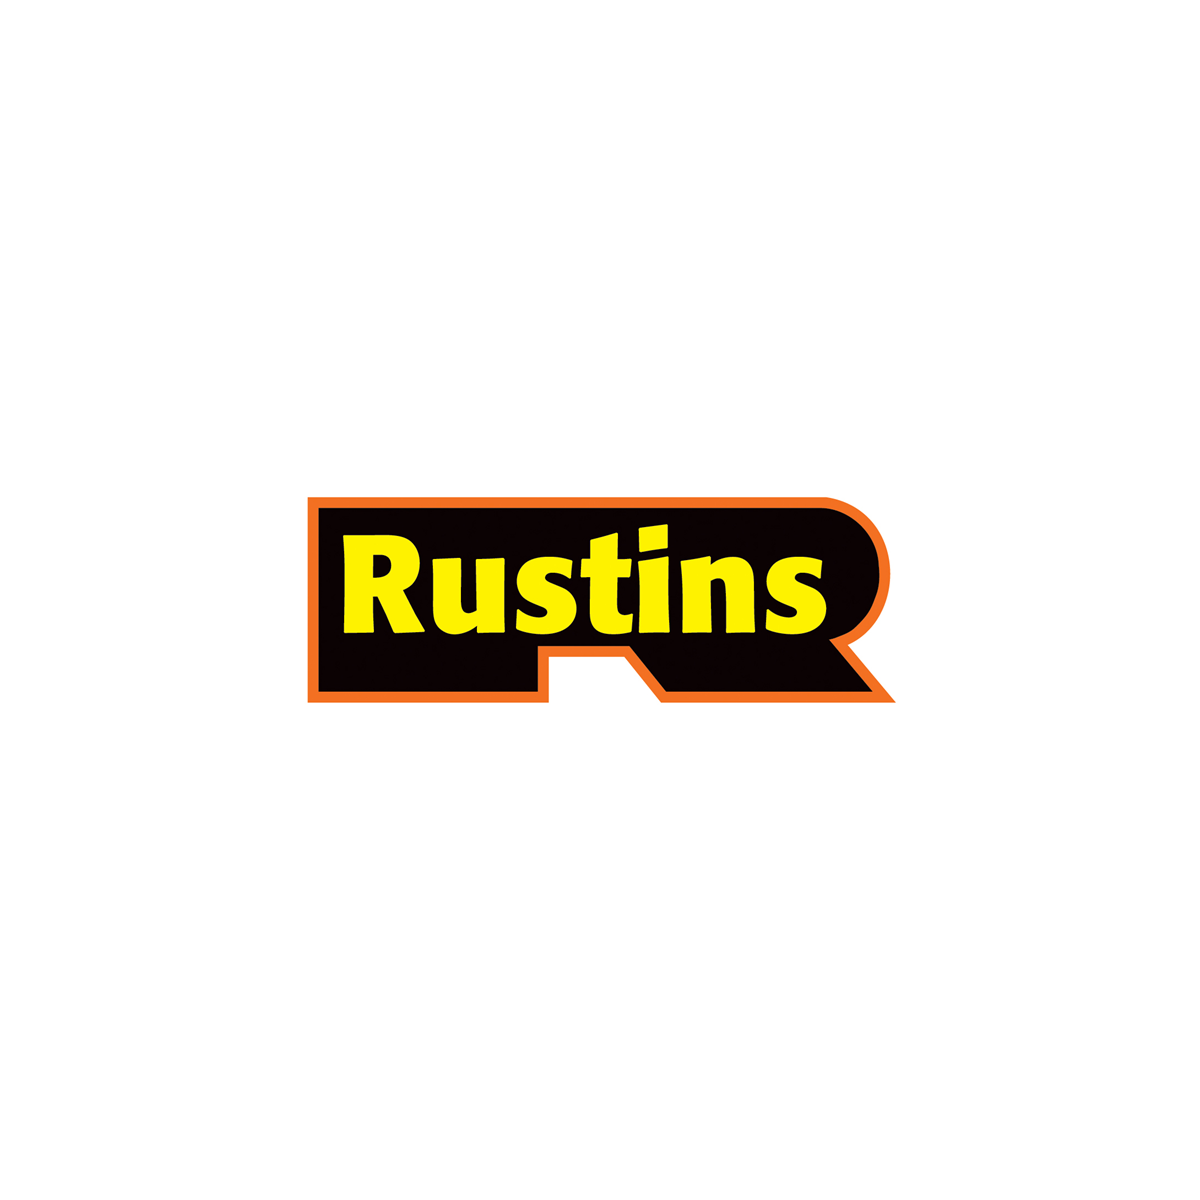 Where to buy Rustins Scratch Covers